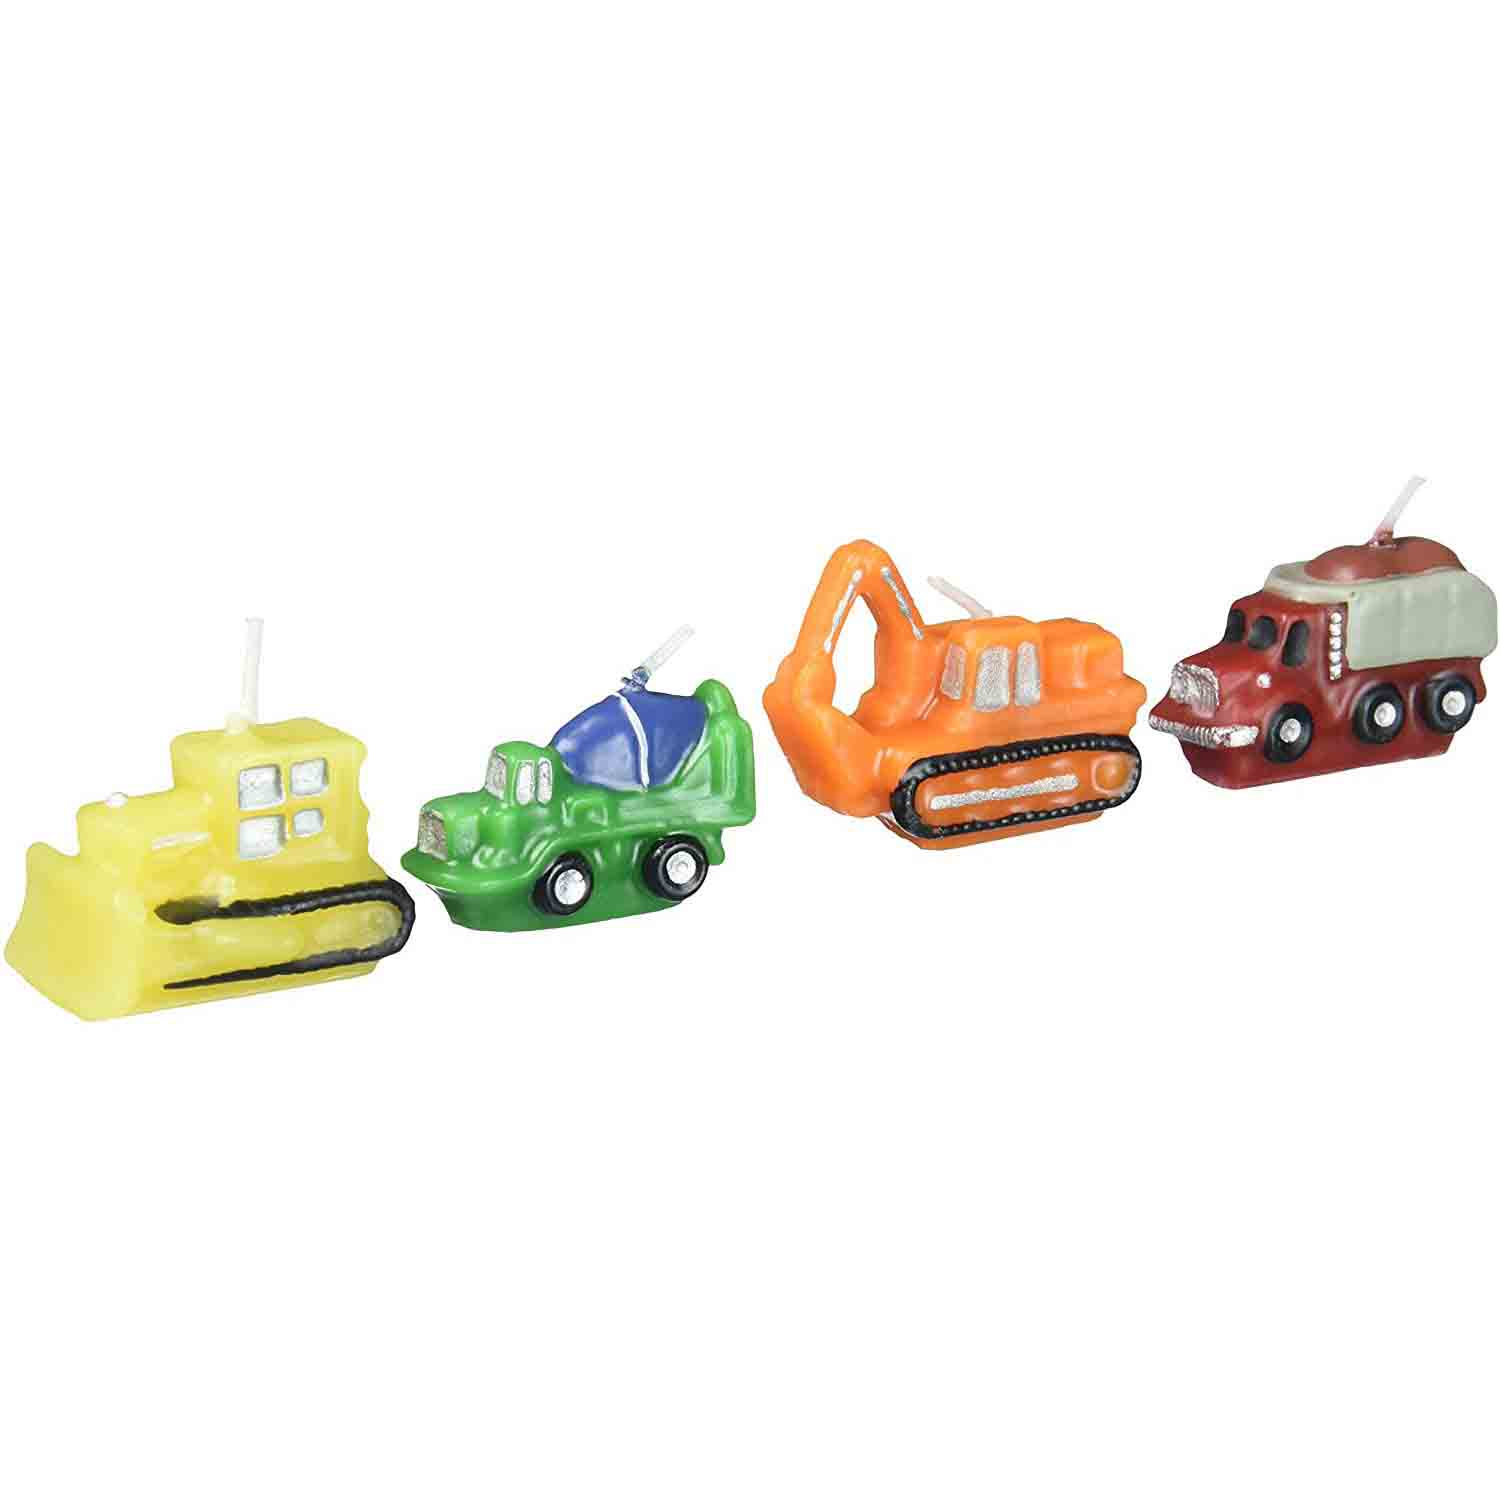 Constructions Vehicles Candle Set